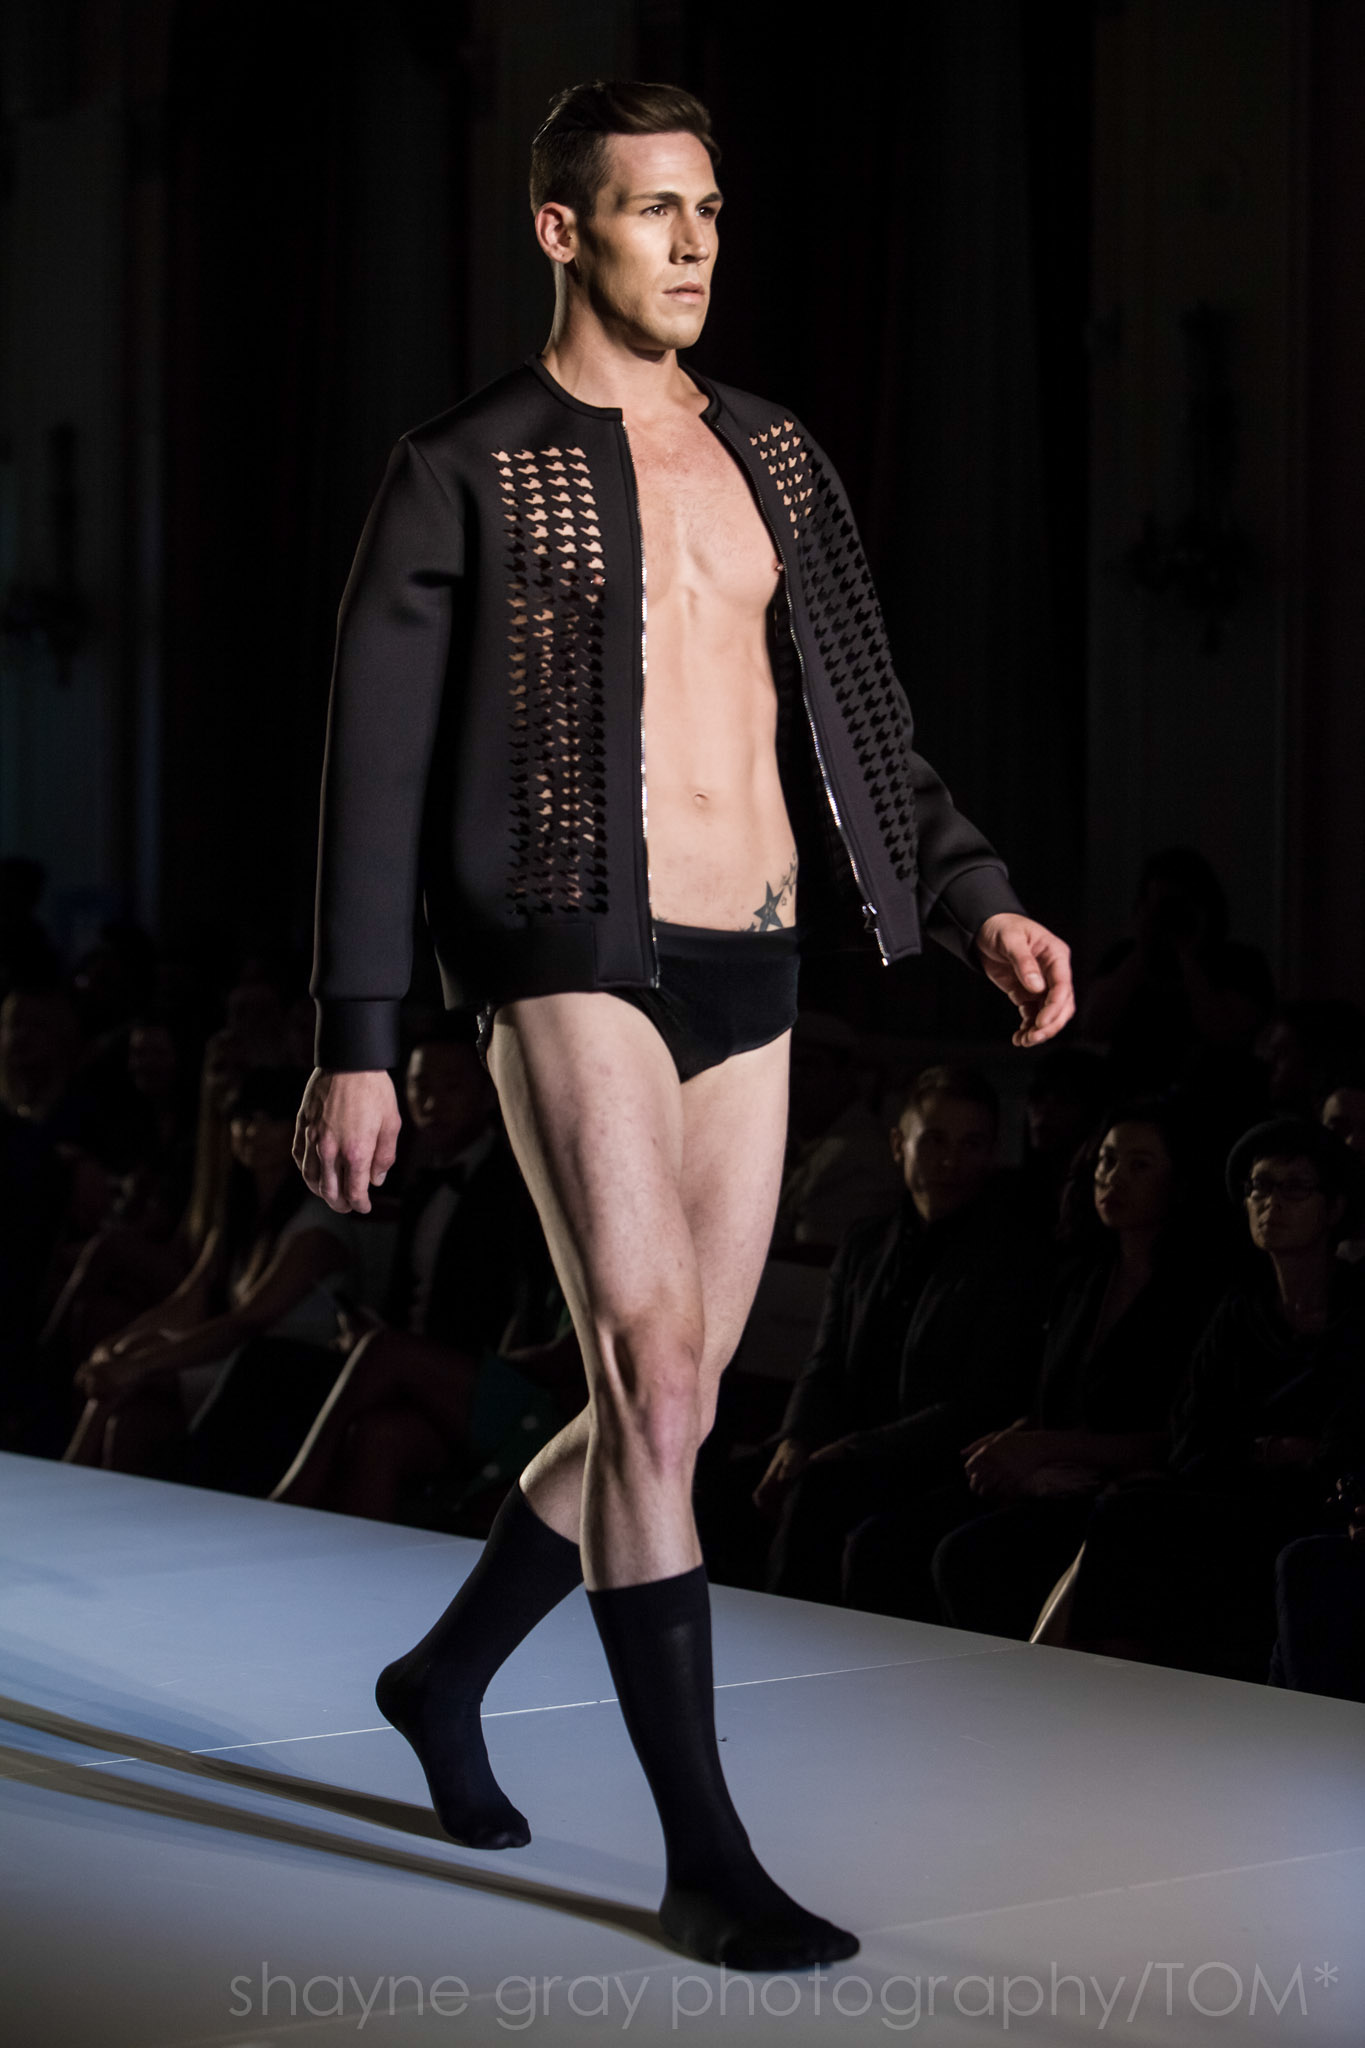 Shayne-Gray-Toronto-men's-fashion_week-TOM-noel-crisostomo-8475.jpg